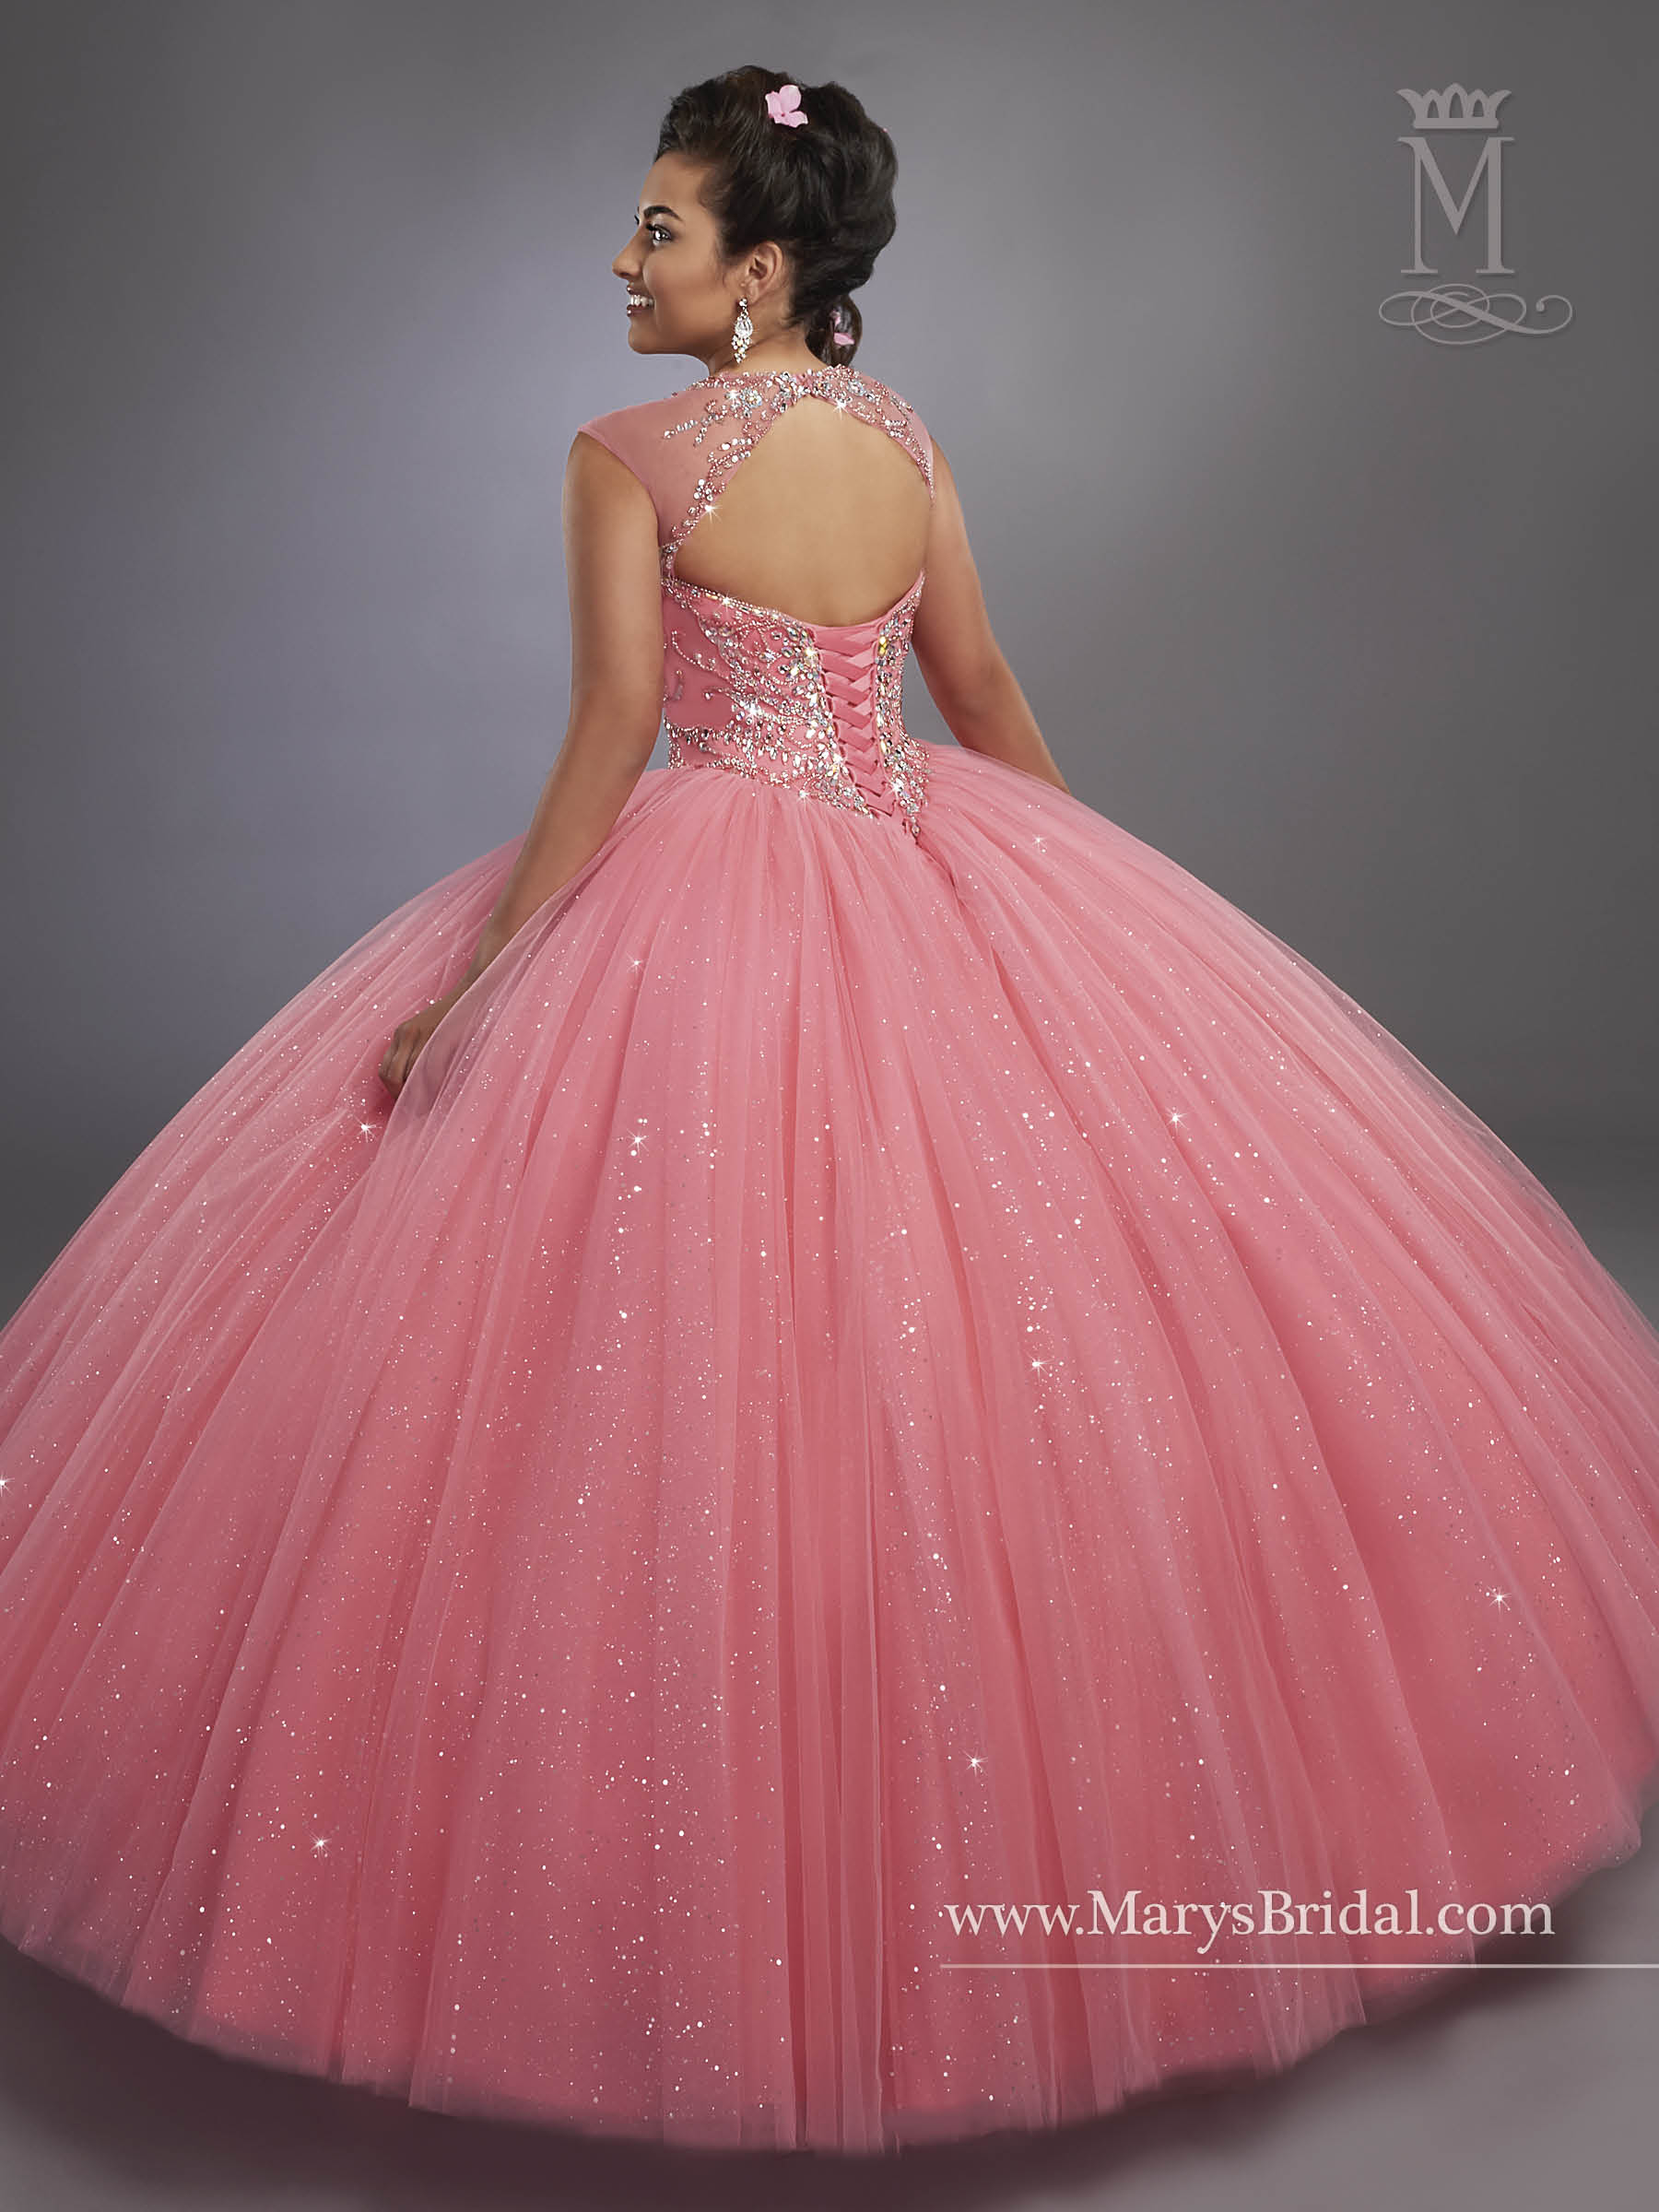 Marys Quinceanera Dresses | Style - 4768 in Calypso, Royal, or White ...